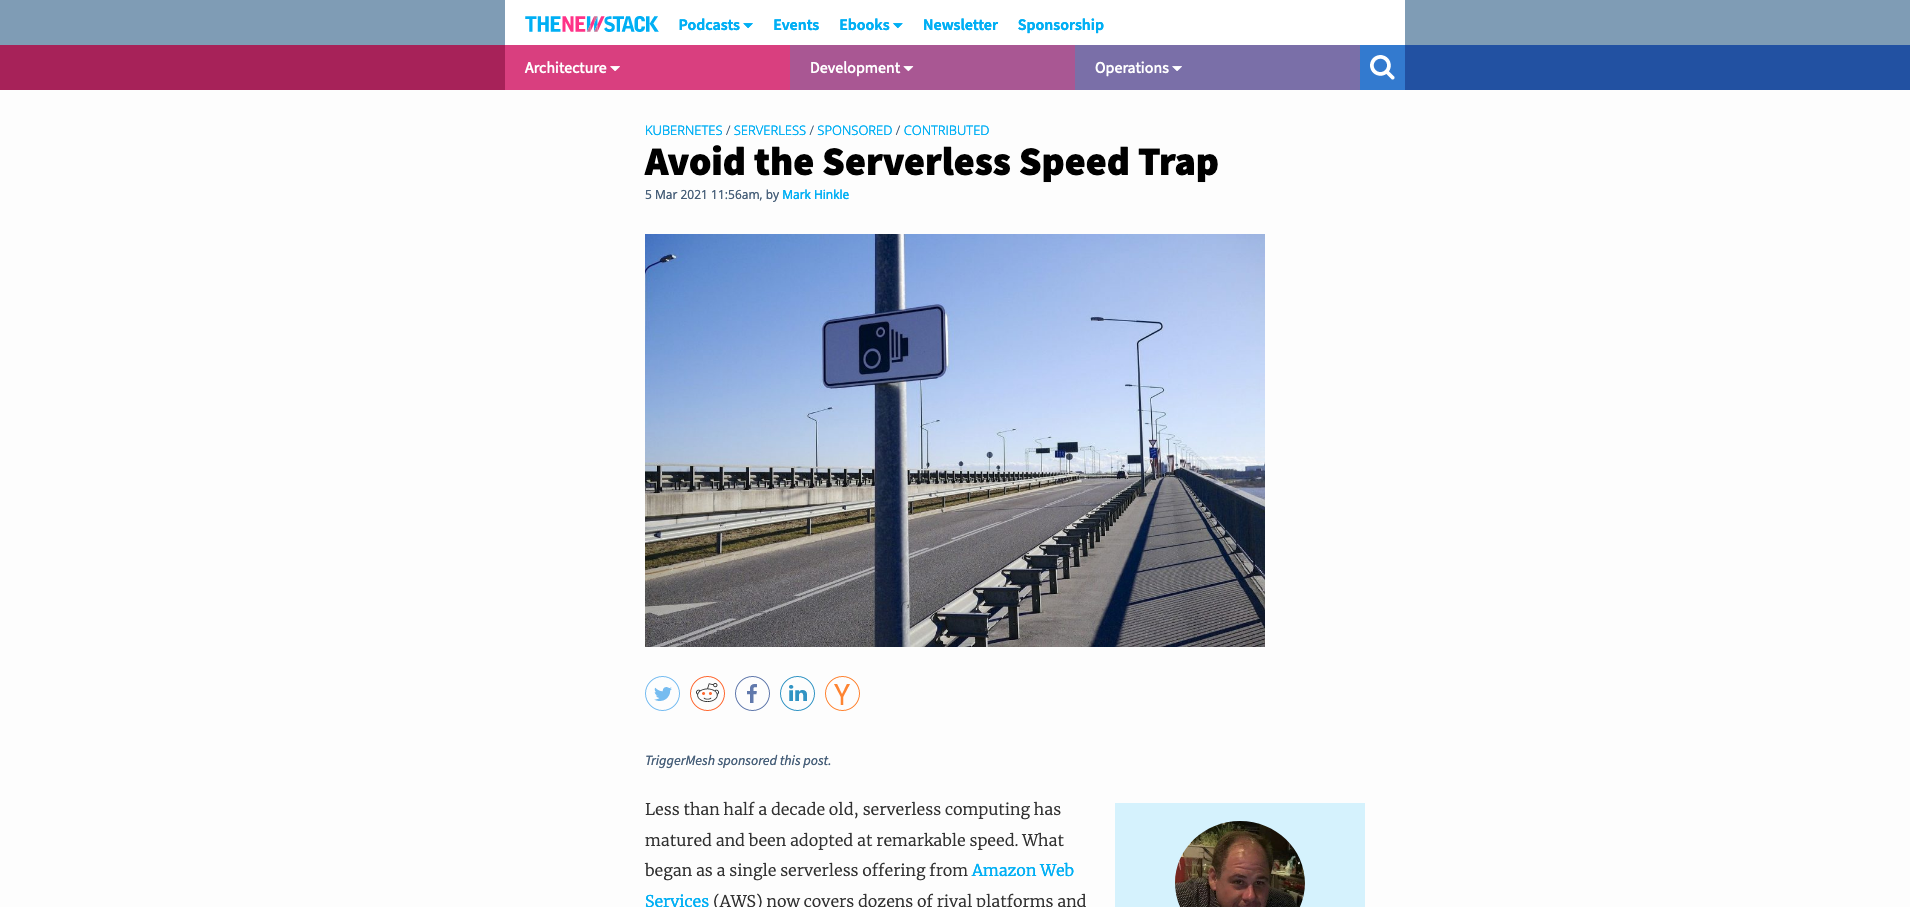 TheNewStack-Avoid the Serverless Speed Trap